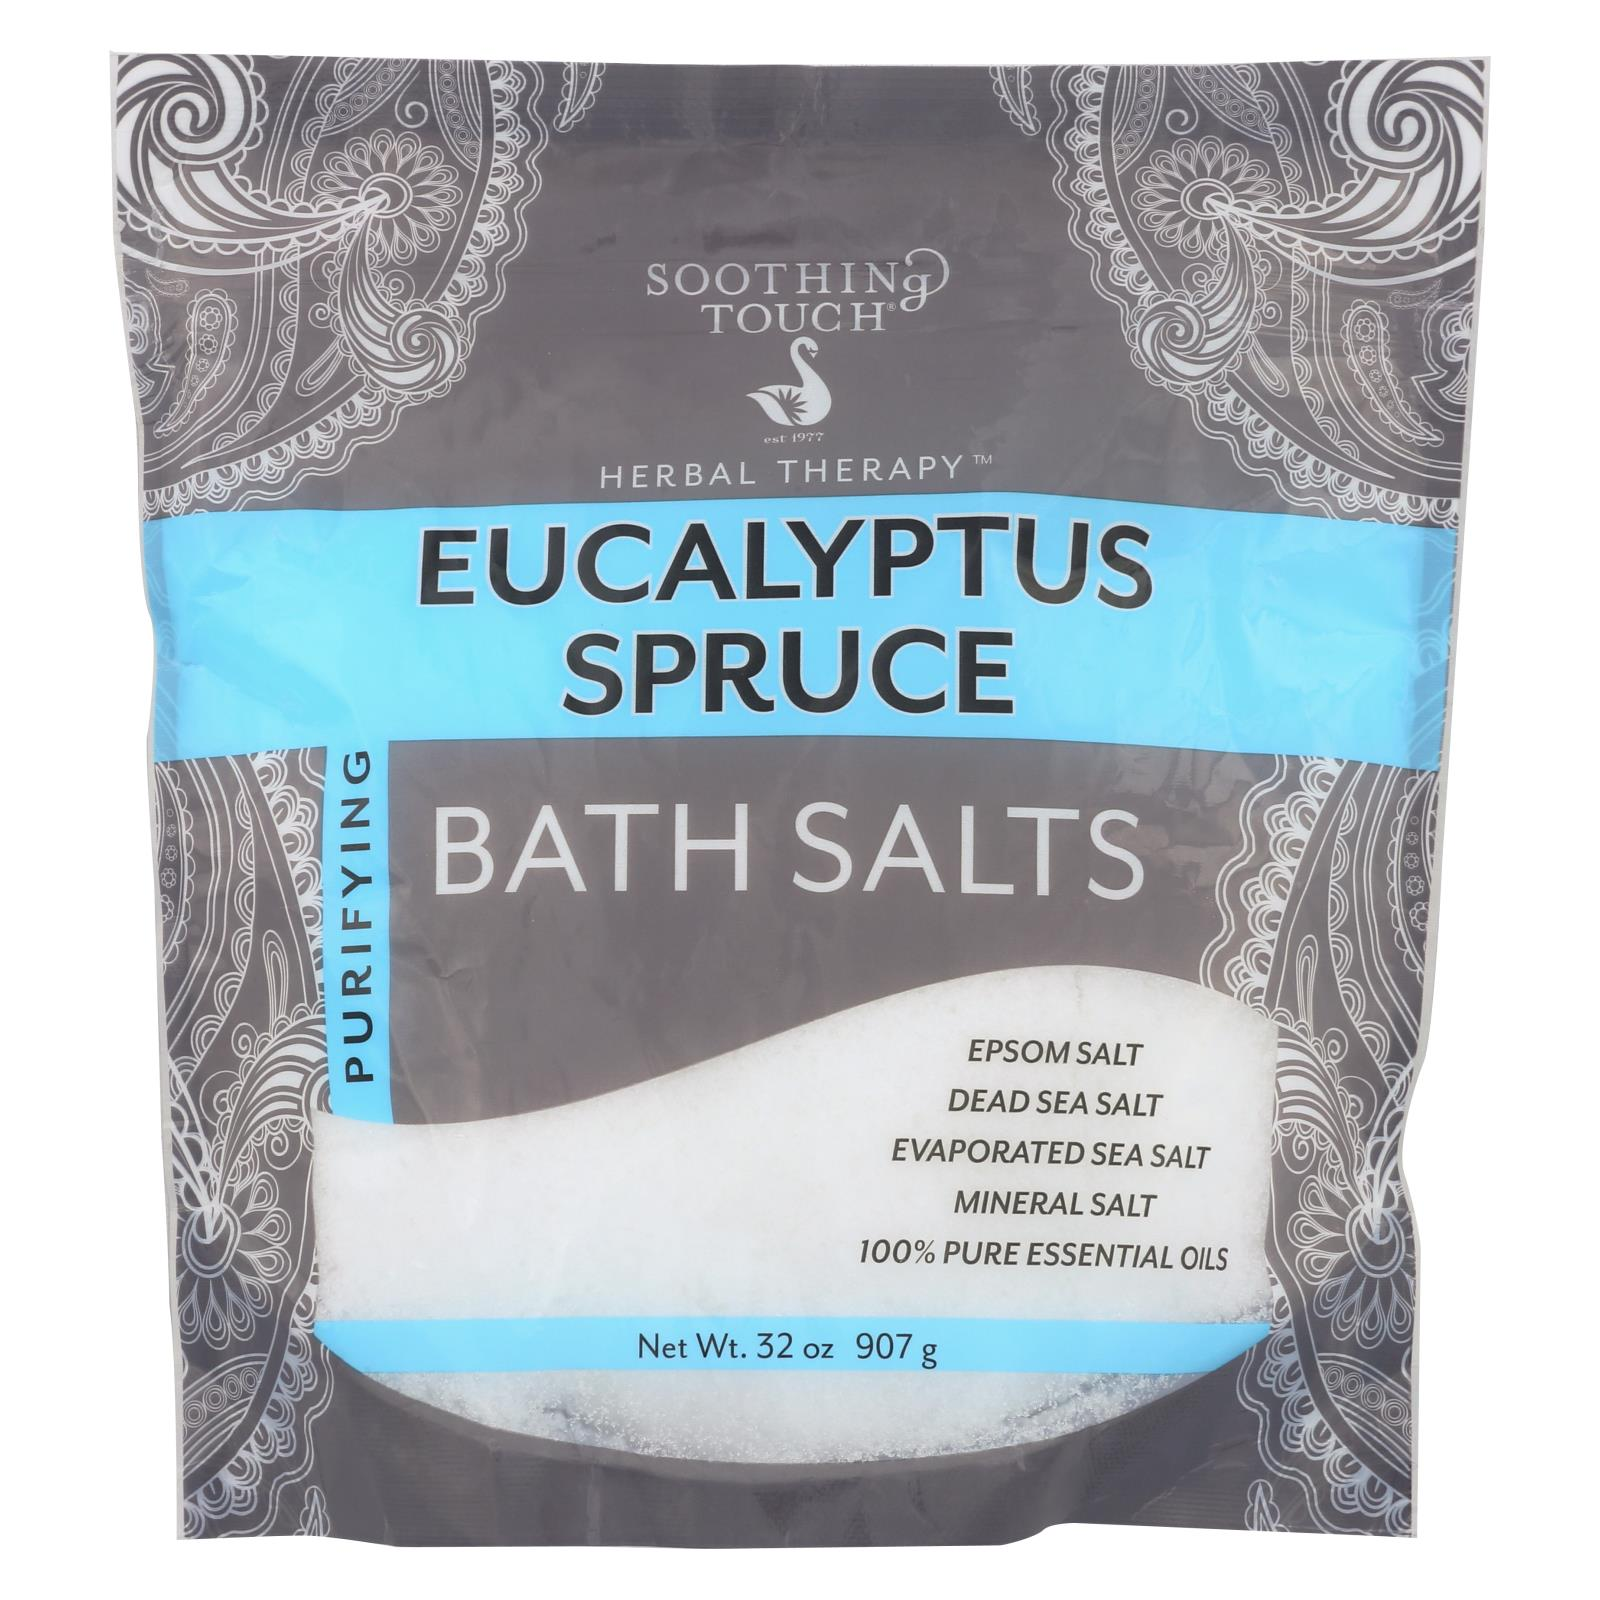 Buy Soothing Touch Bath Salts - Eucalyptus Spruce - 32 oz - Bubble Bath and Soaks from Veroeco.com